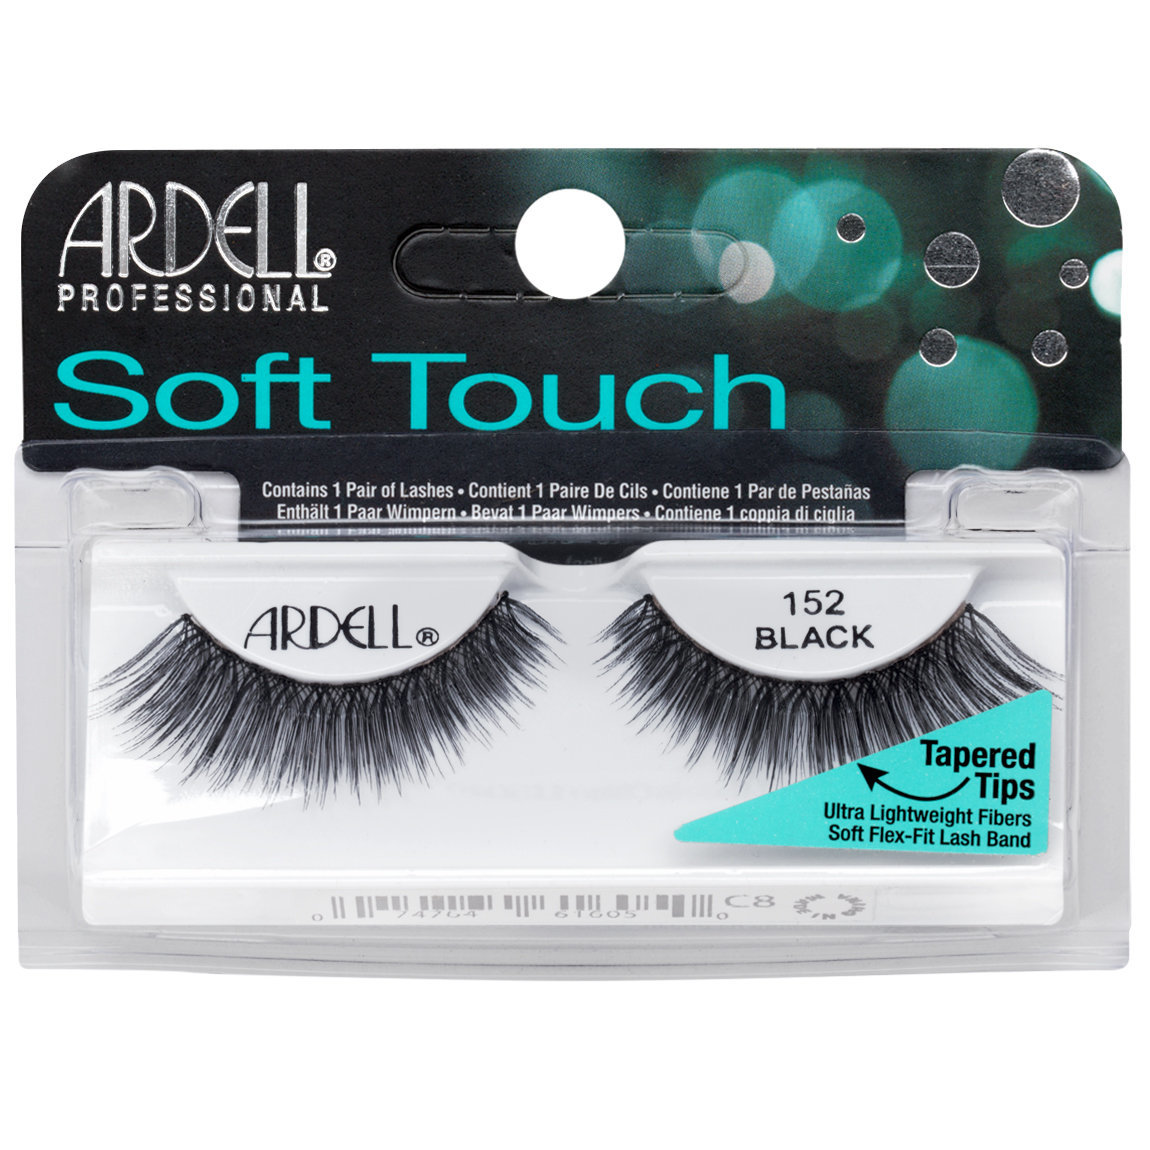 Ardell Soft Touch Lashes 152 Black alternative view 1.